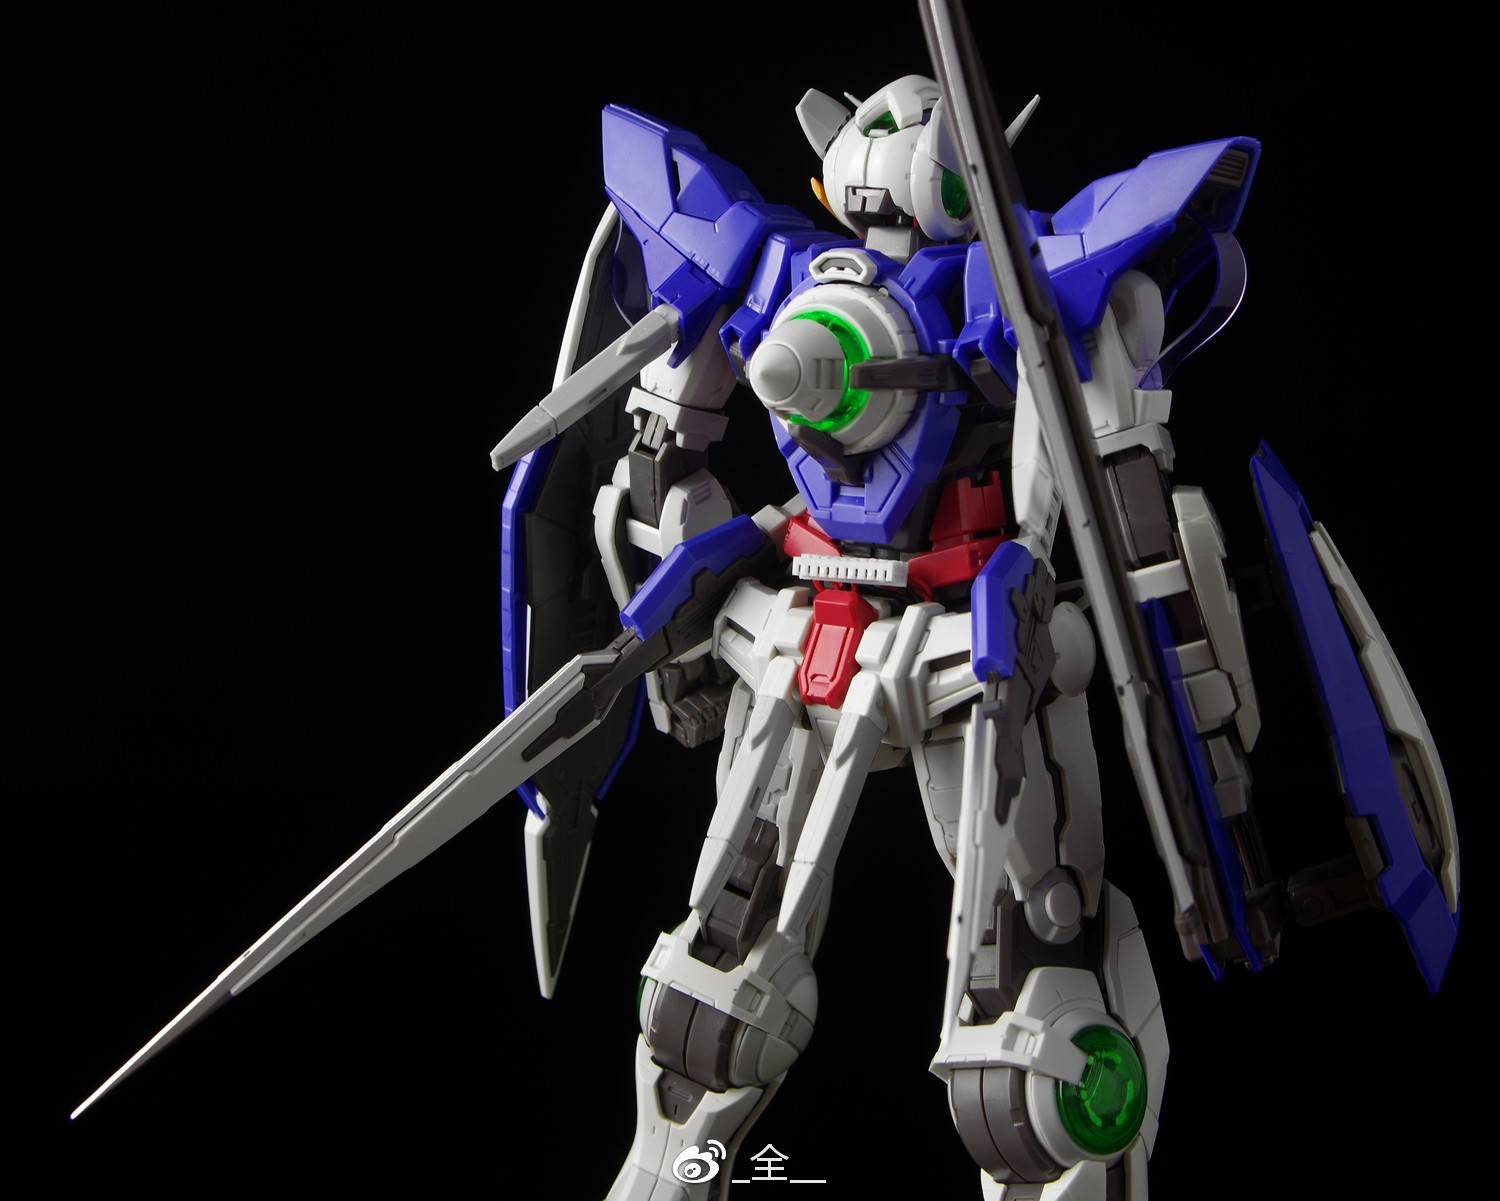 S269_mg_exia_led_hobby_star_inask_069.jpg